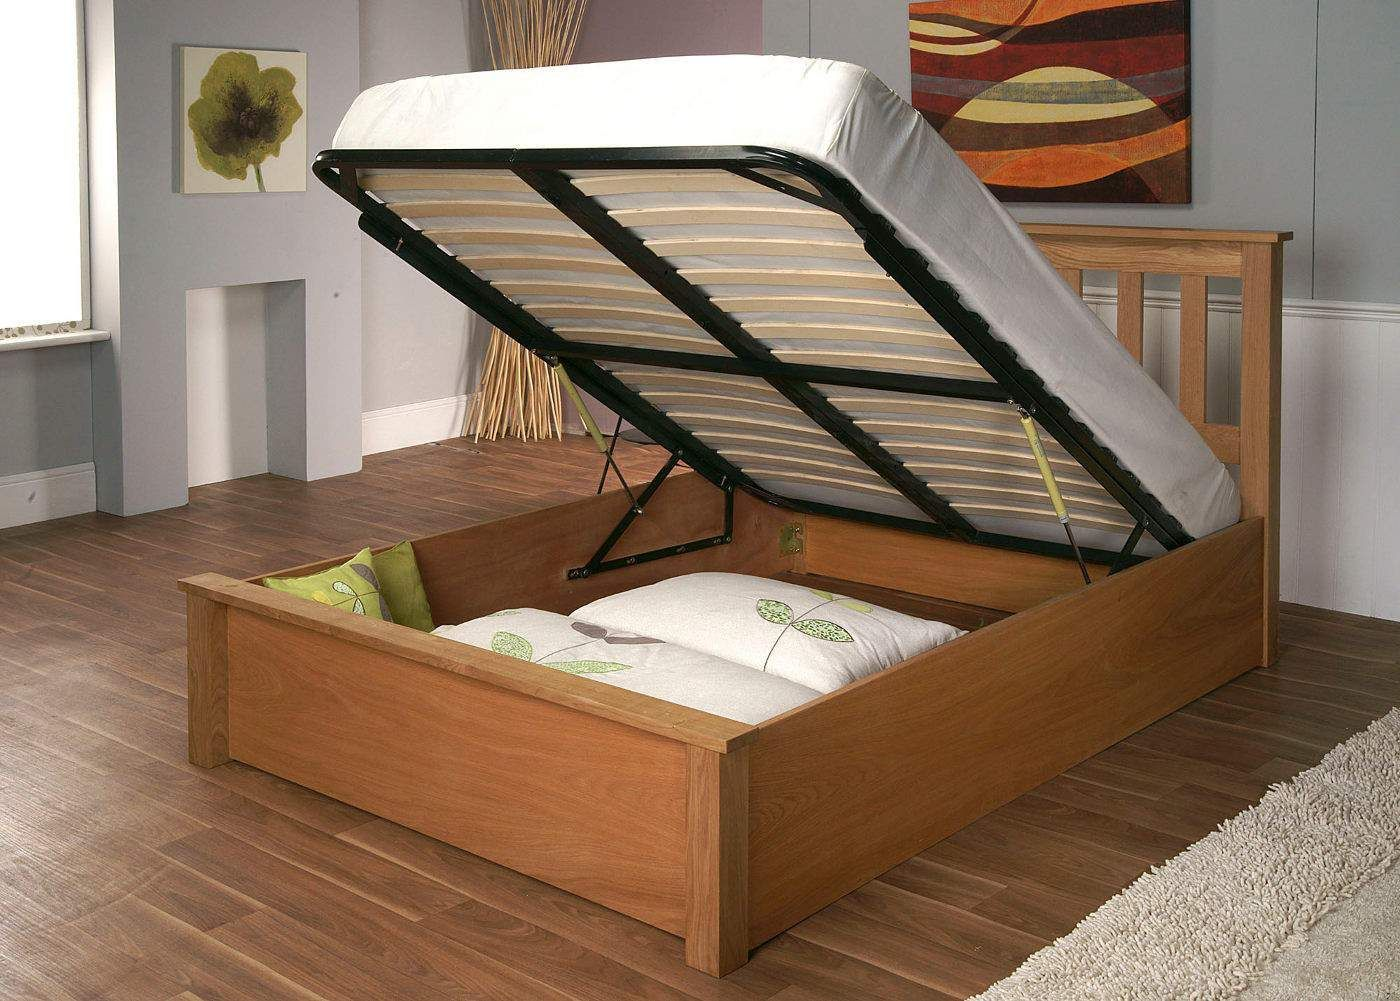 Magnificent Bed Storage Lift Up Kid Beds Ottoman Storage Bed Dailytribune Chair Design For Home Dailytribuneorg